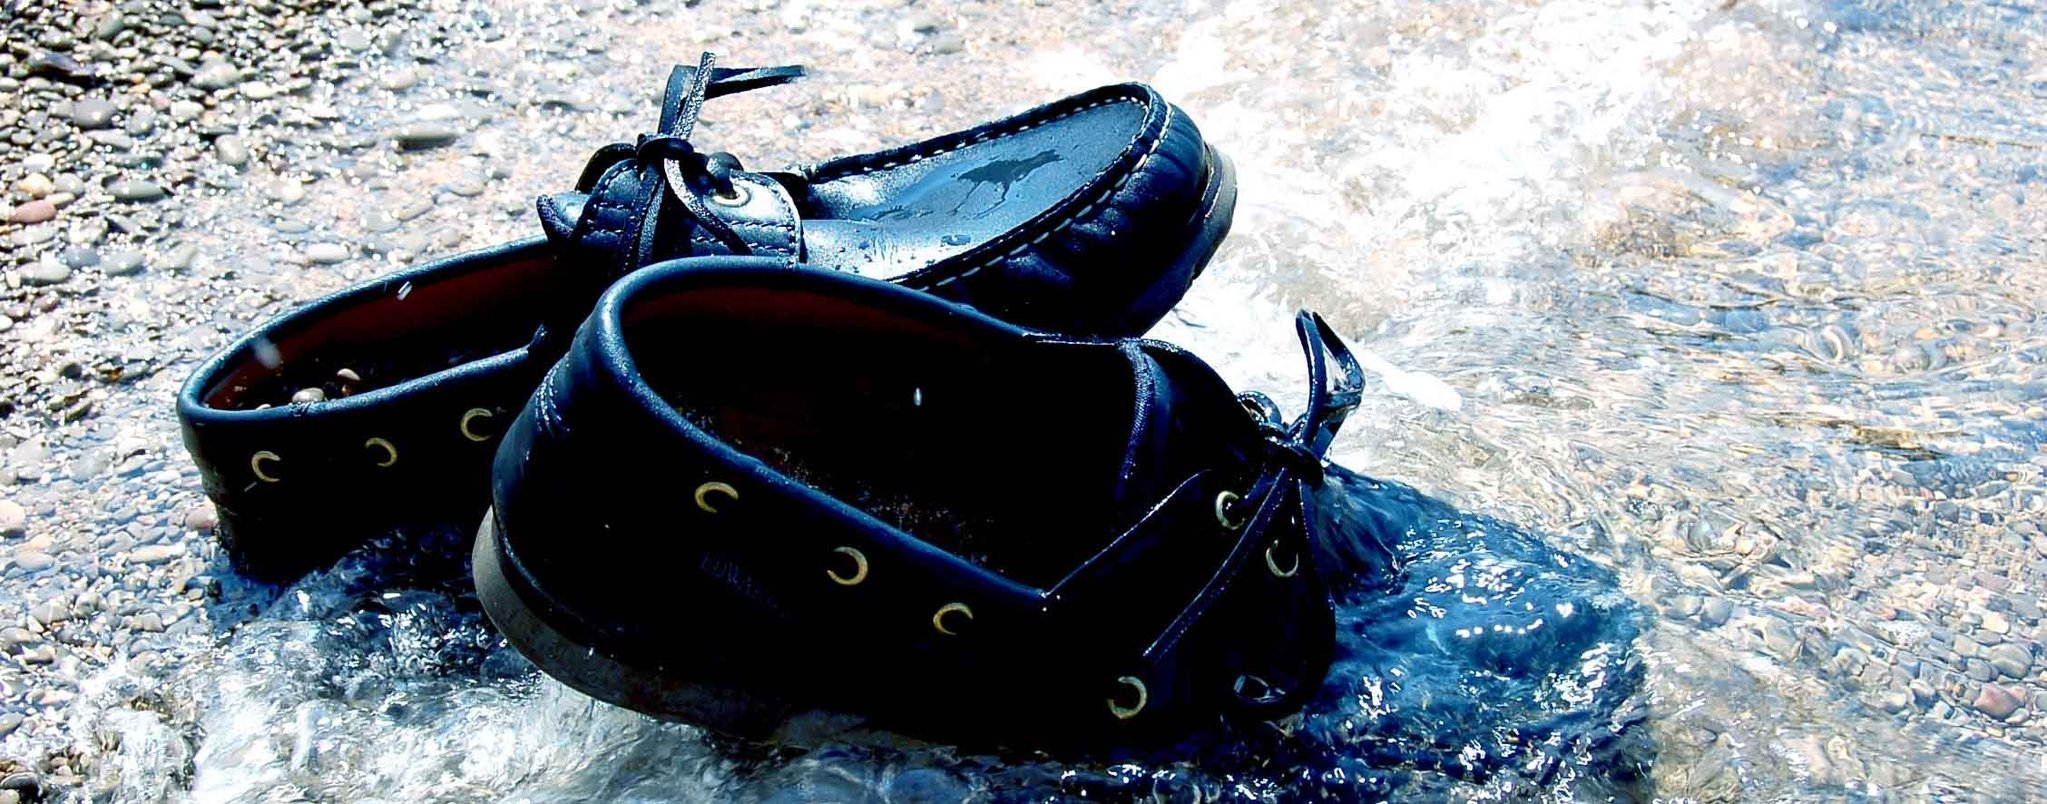 How to dry wet leather